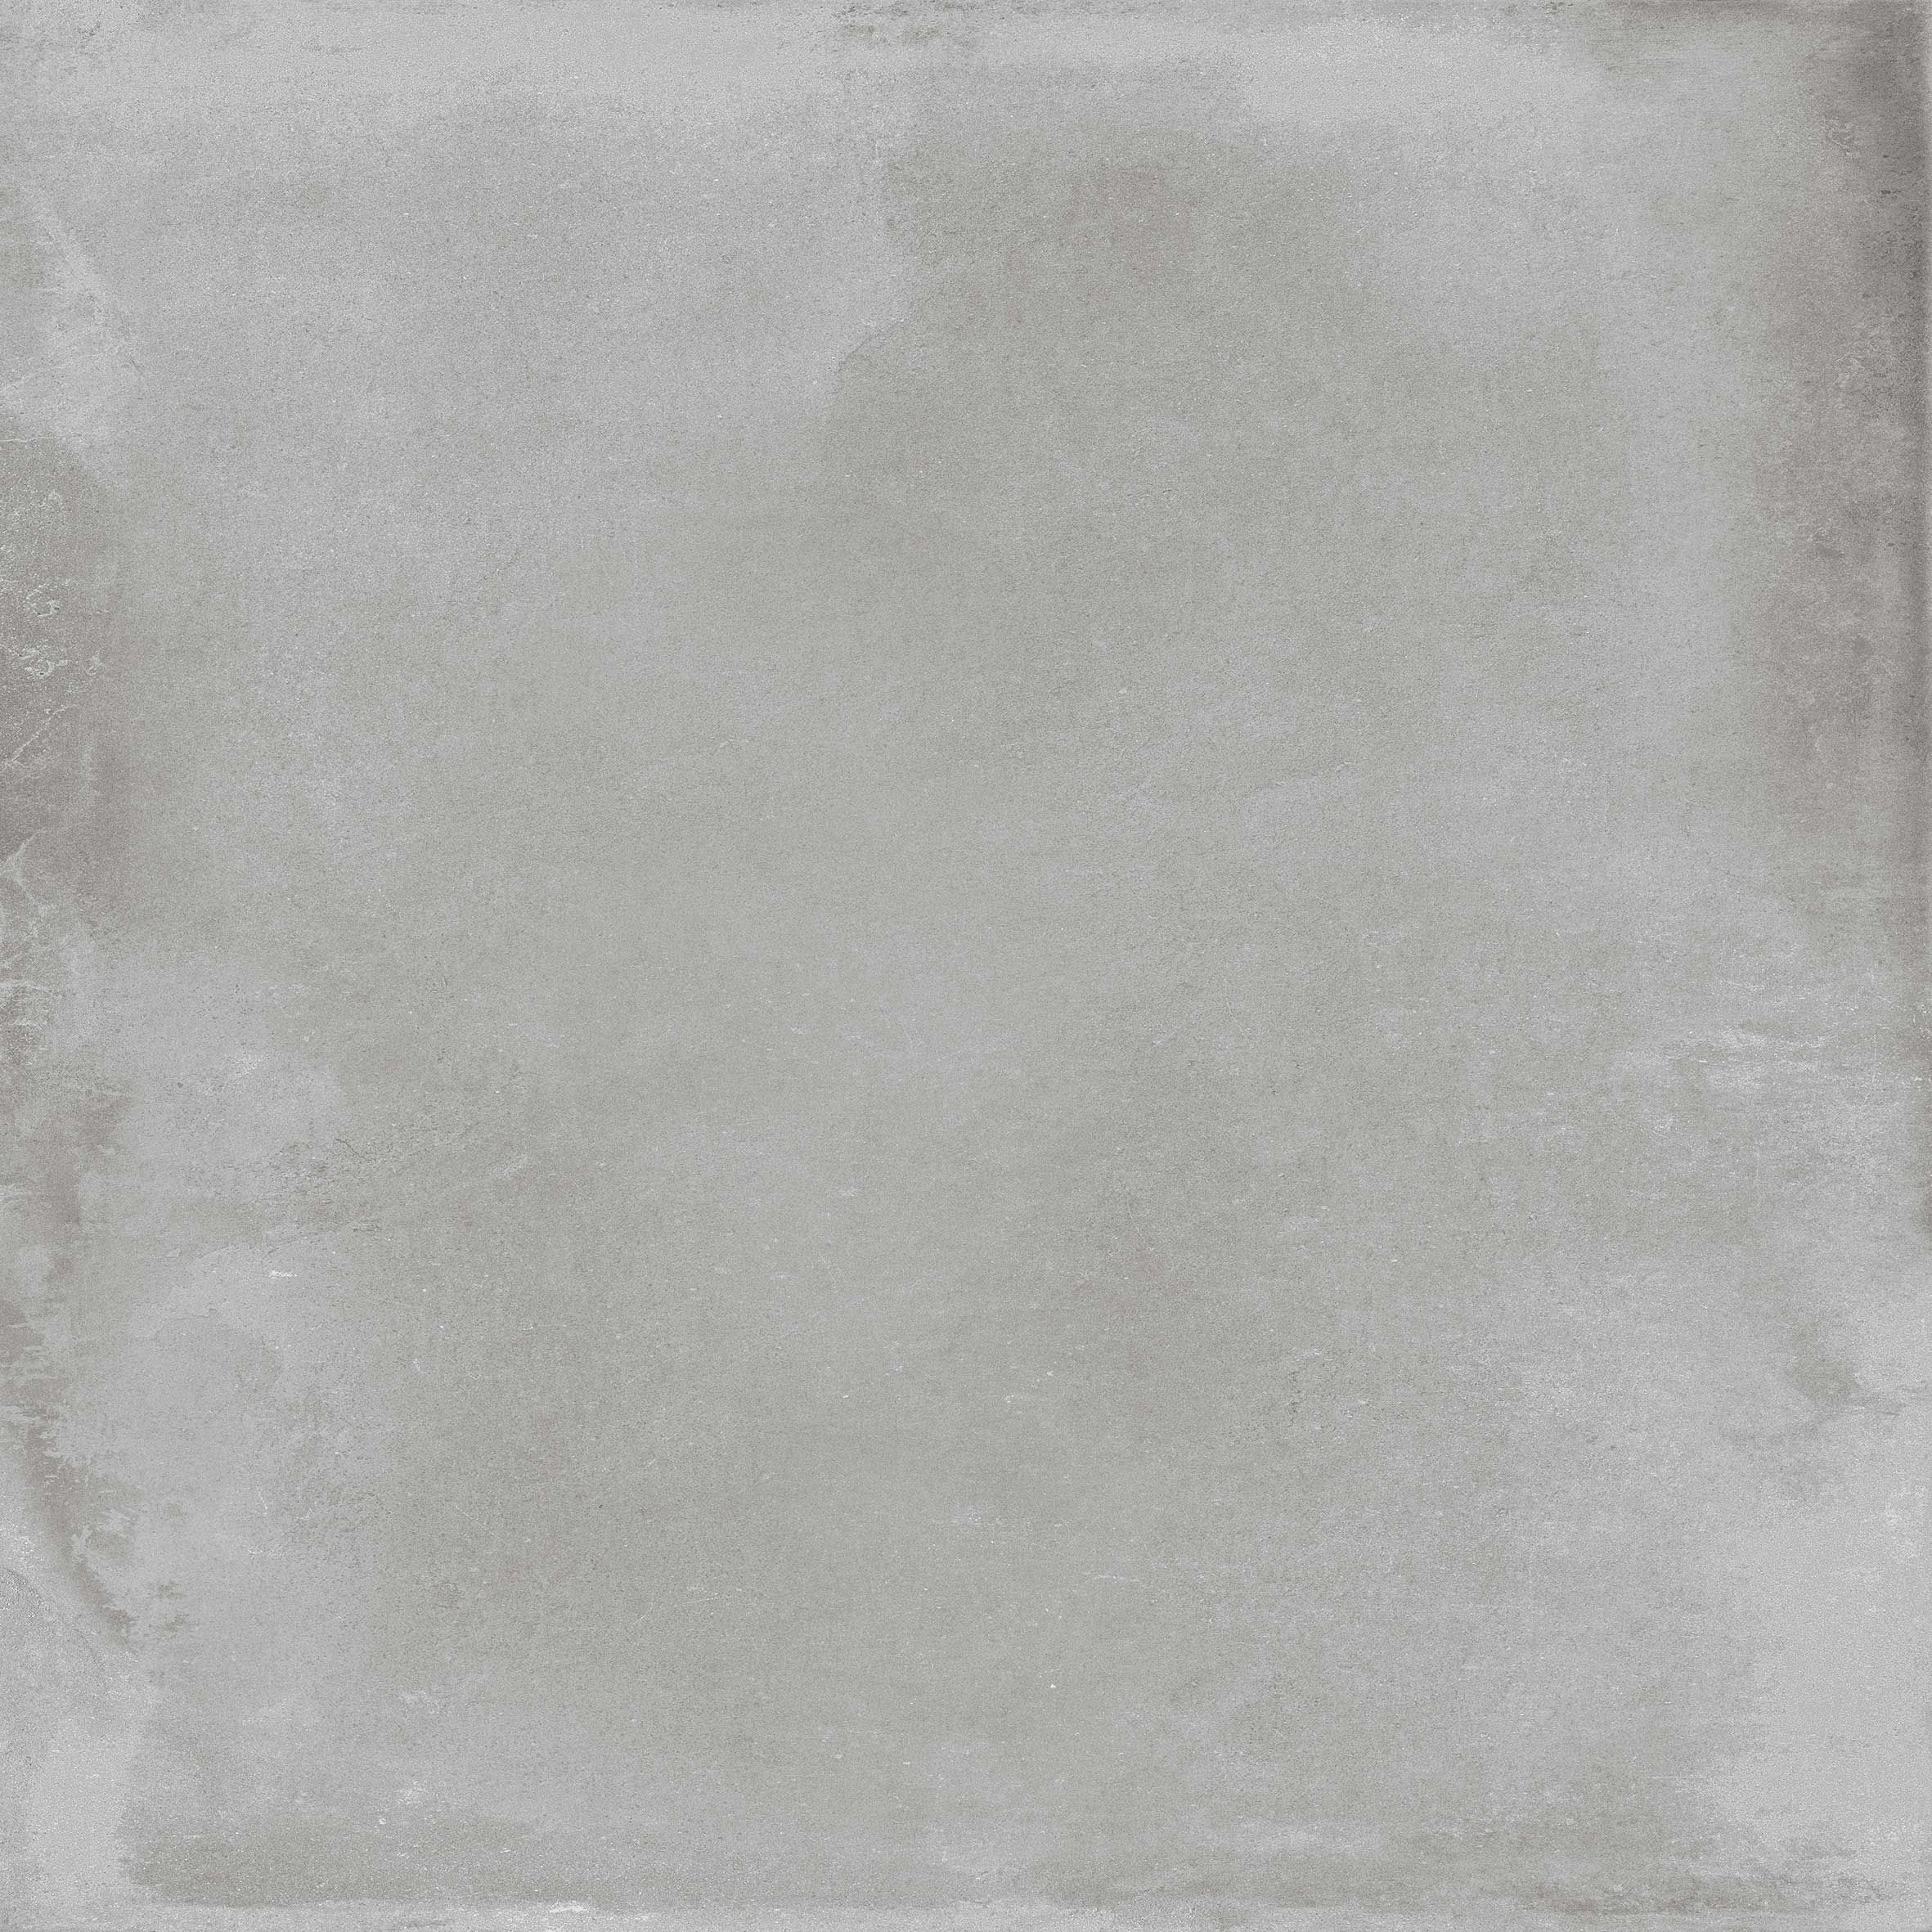 Derby gris colored body porcelain by roca porcelain tiles by discover our color body porcelain from roca tile usa indoor and outdoor ceramic tiles dailygadgetfo Images